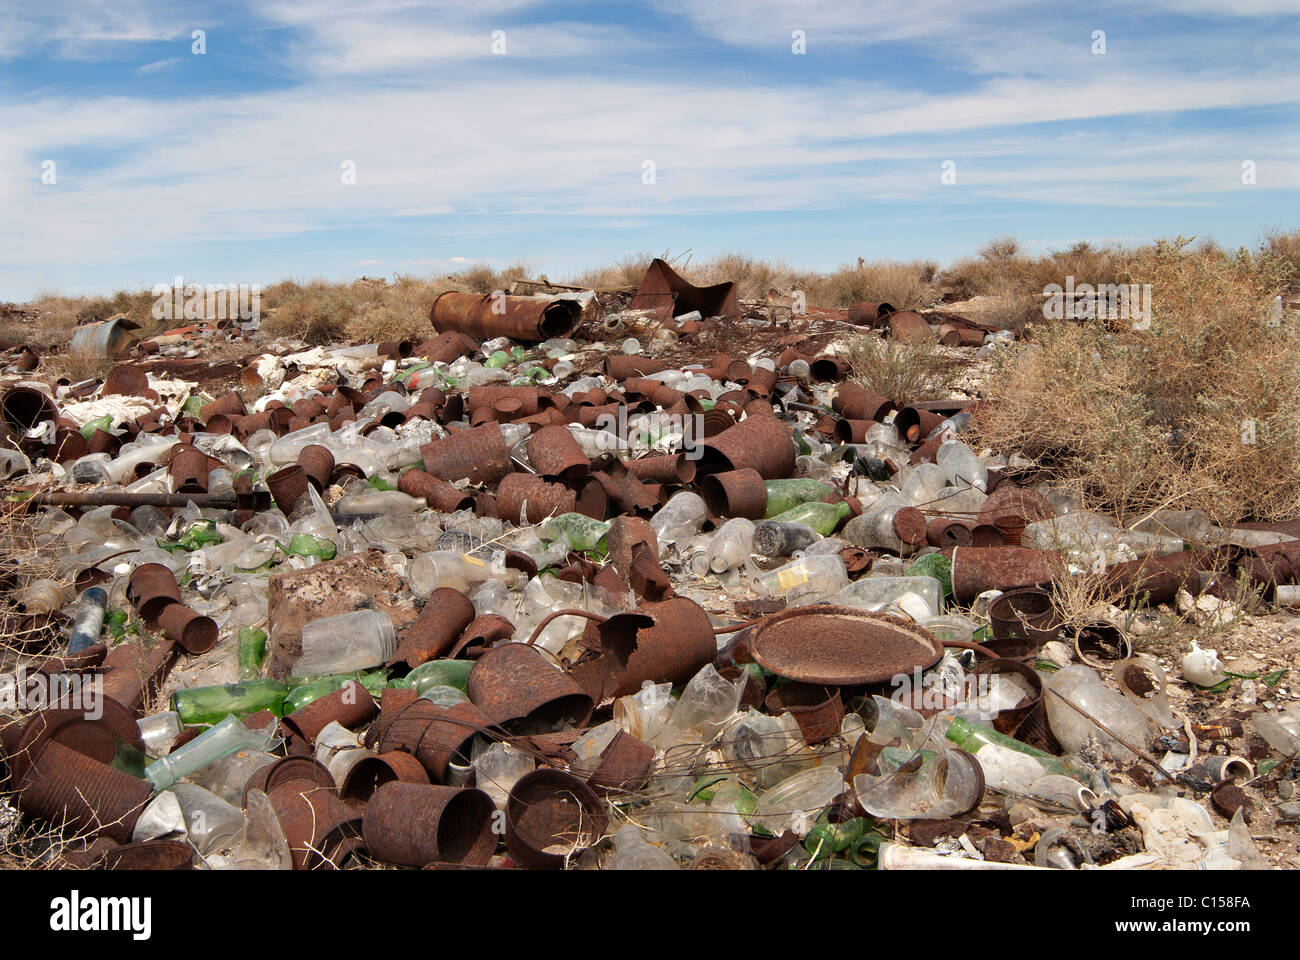 Rusty cans, broken glass filling the landfill. - Stock Image